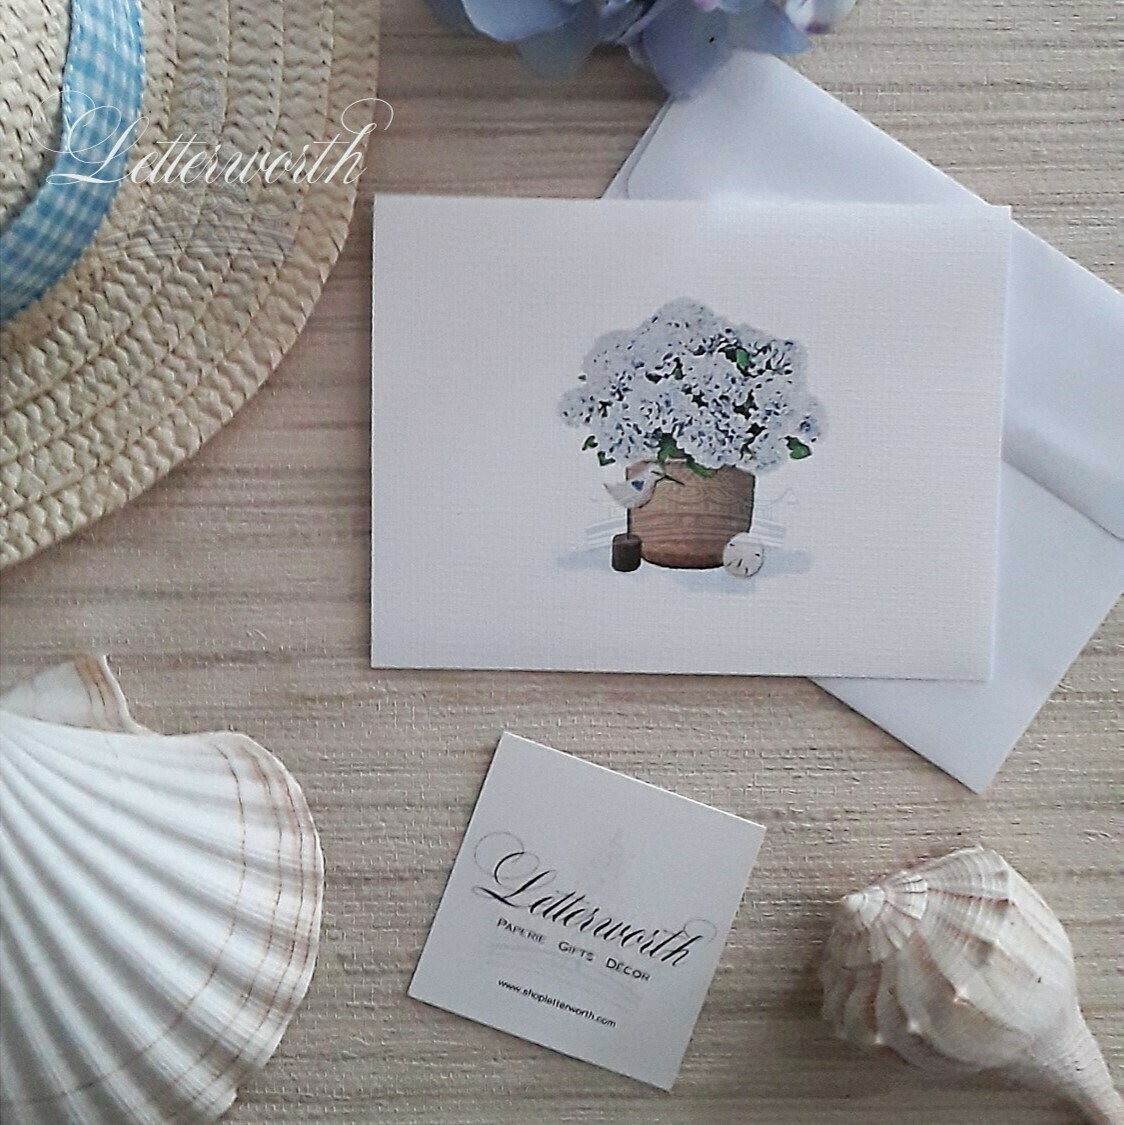 Letterworth Nantucket Basket with Blue Hydrangeas Watercolor Note Cards (Set of 8)